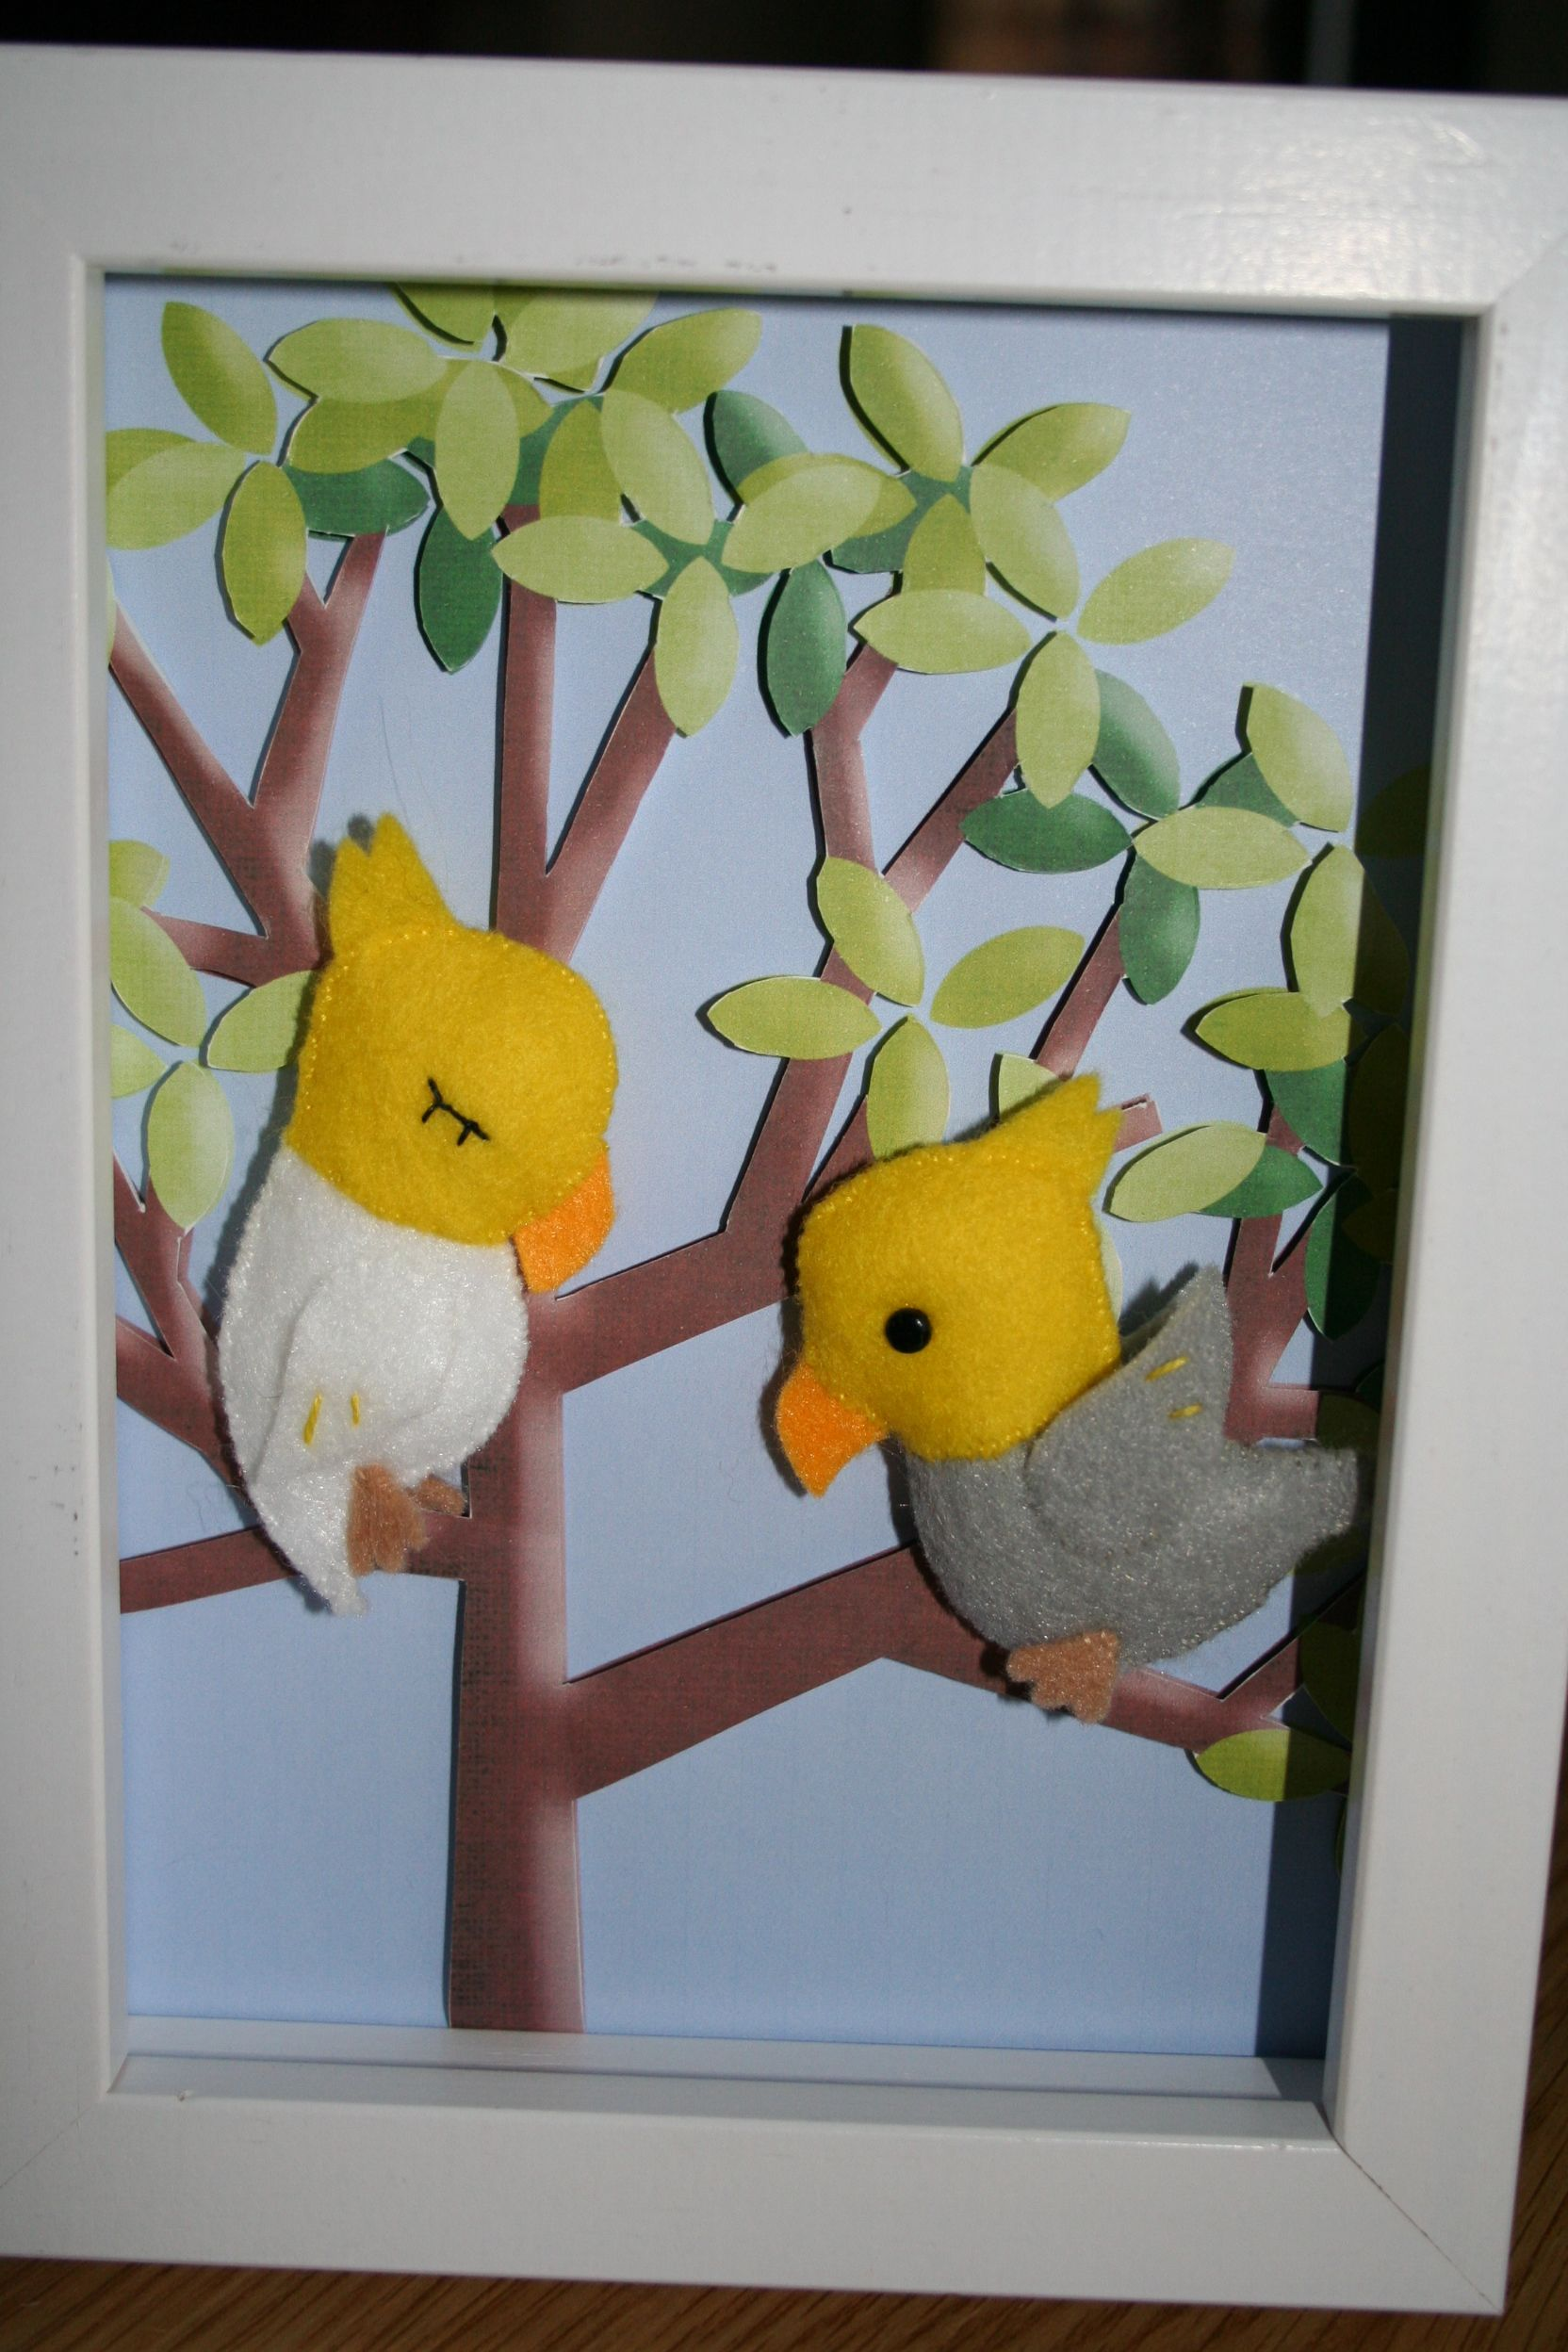 Felt parakeets in a box frame for my sister